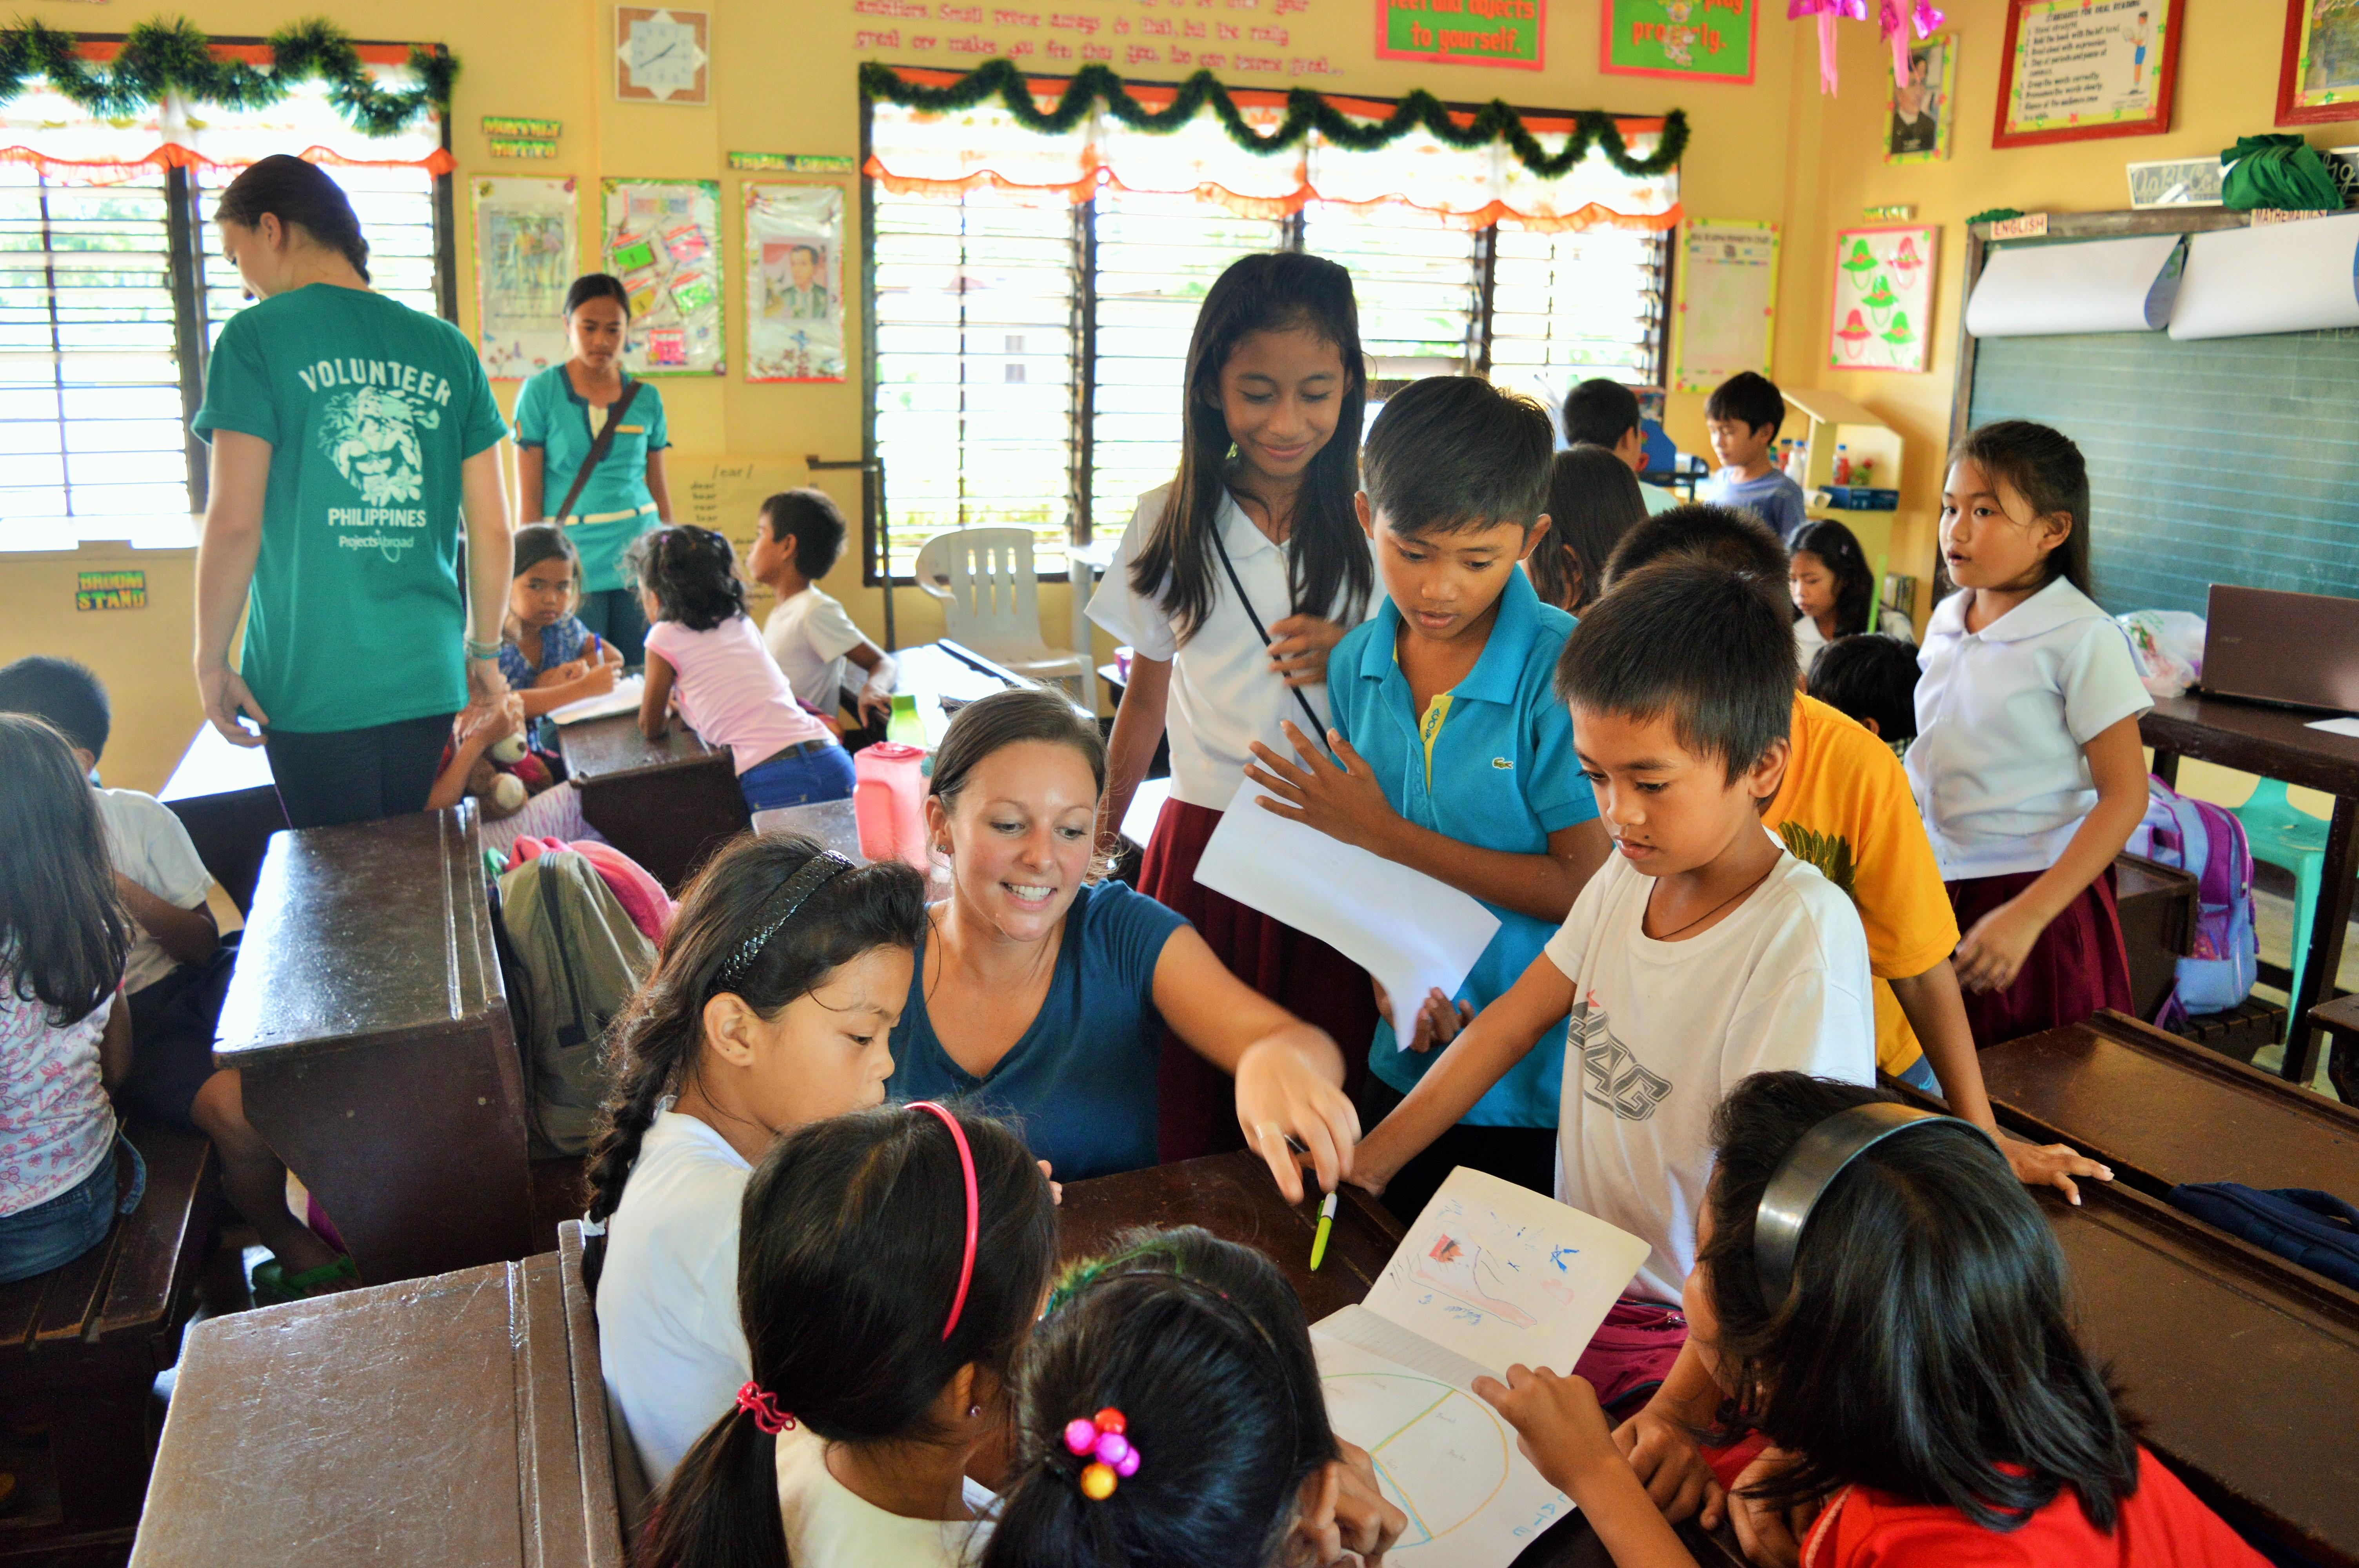 Projects Abroad volunteer teaching English nutrition words in the Philippines